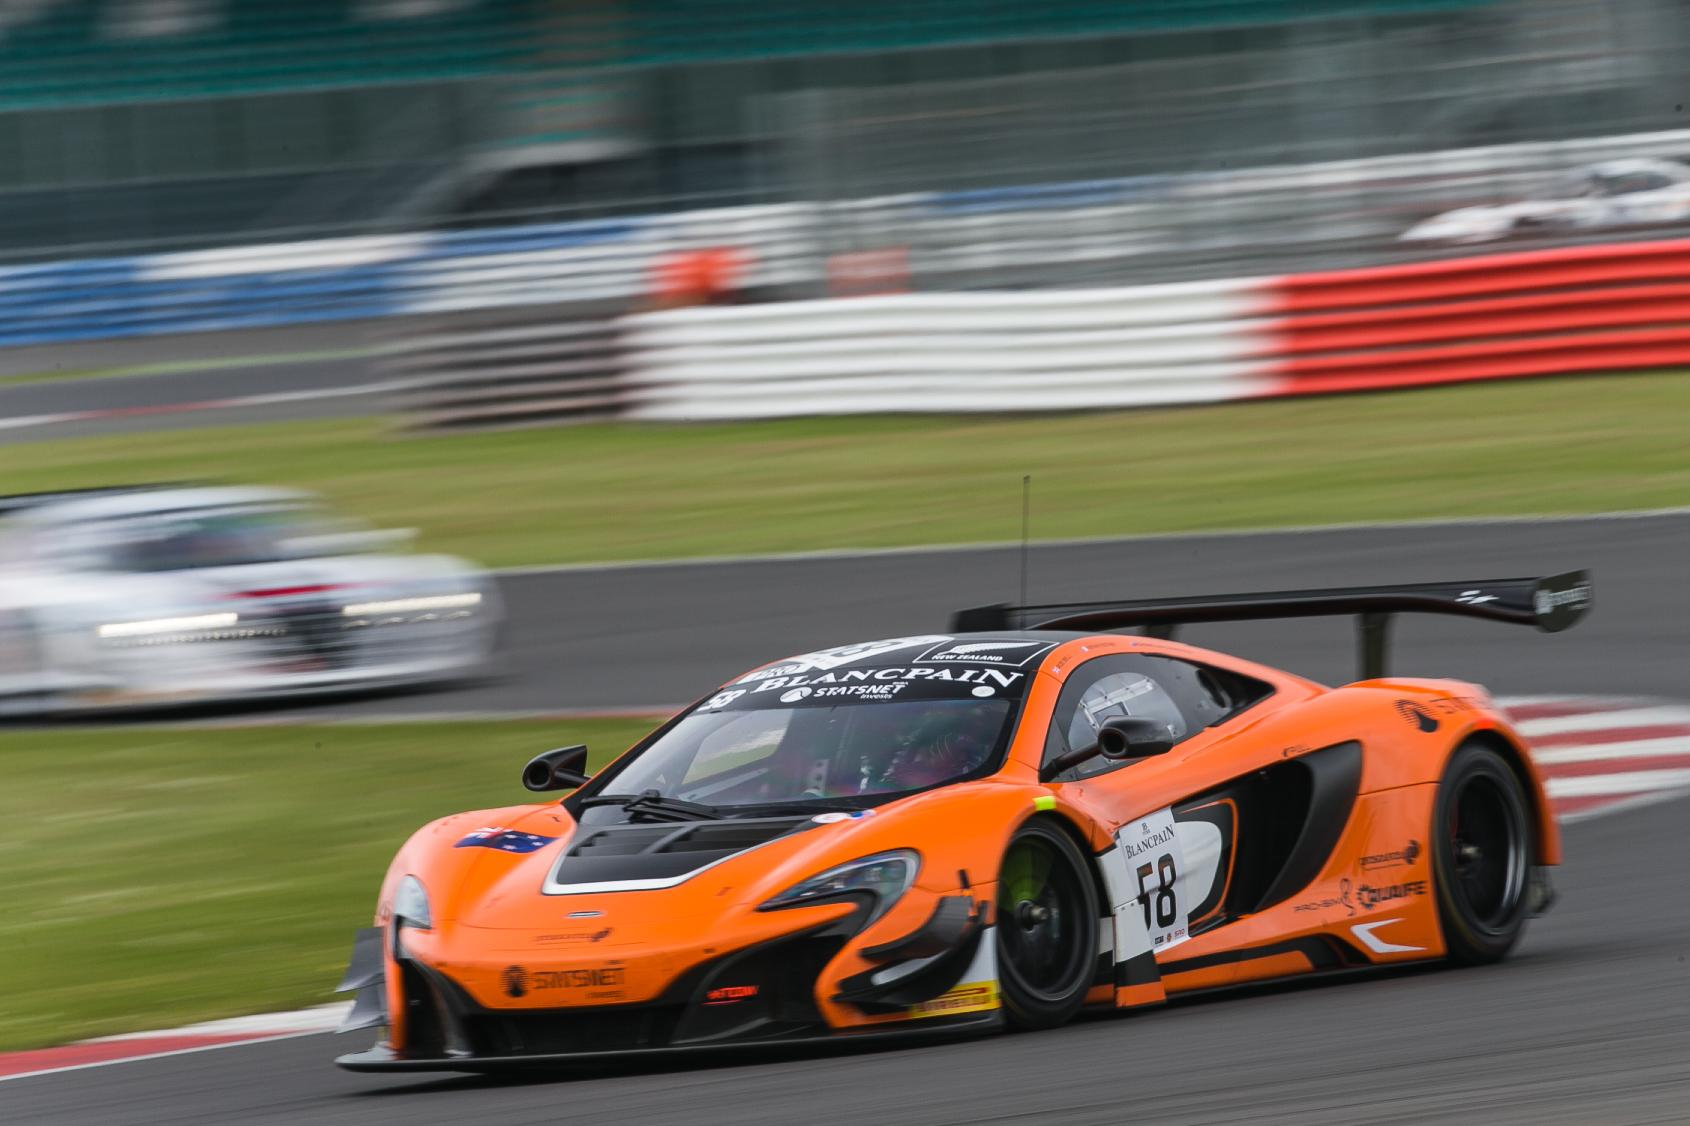 mclaren 650s gt3 claims victory at silverstone. Black Bedroom Furniture Sets. Home Design Ideas